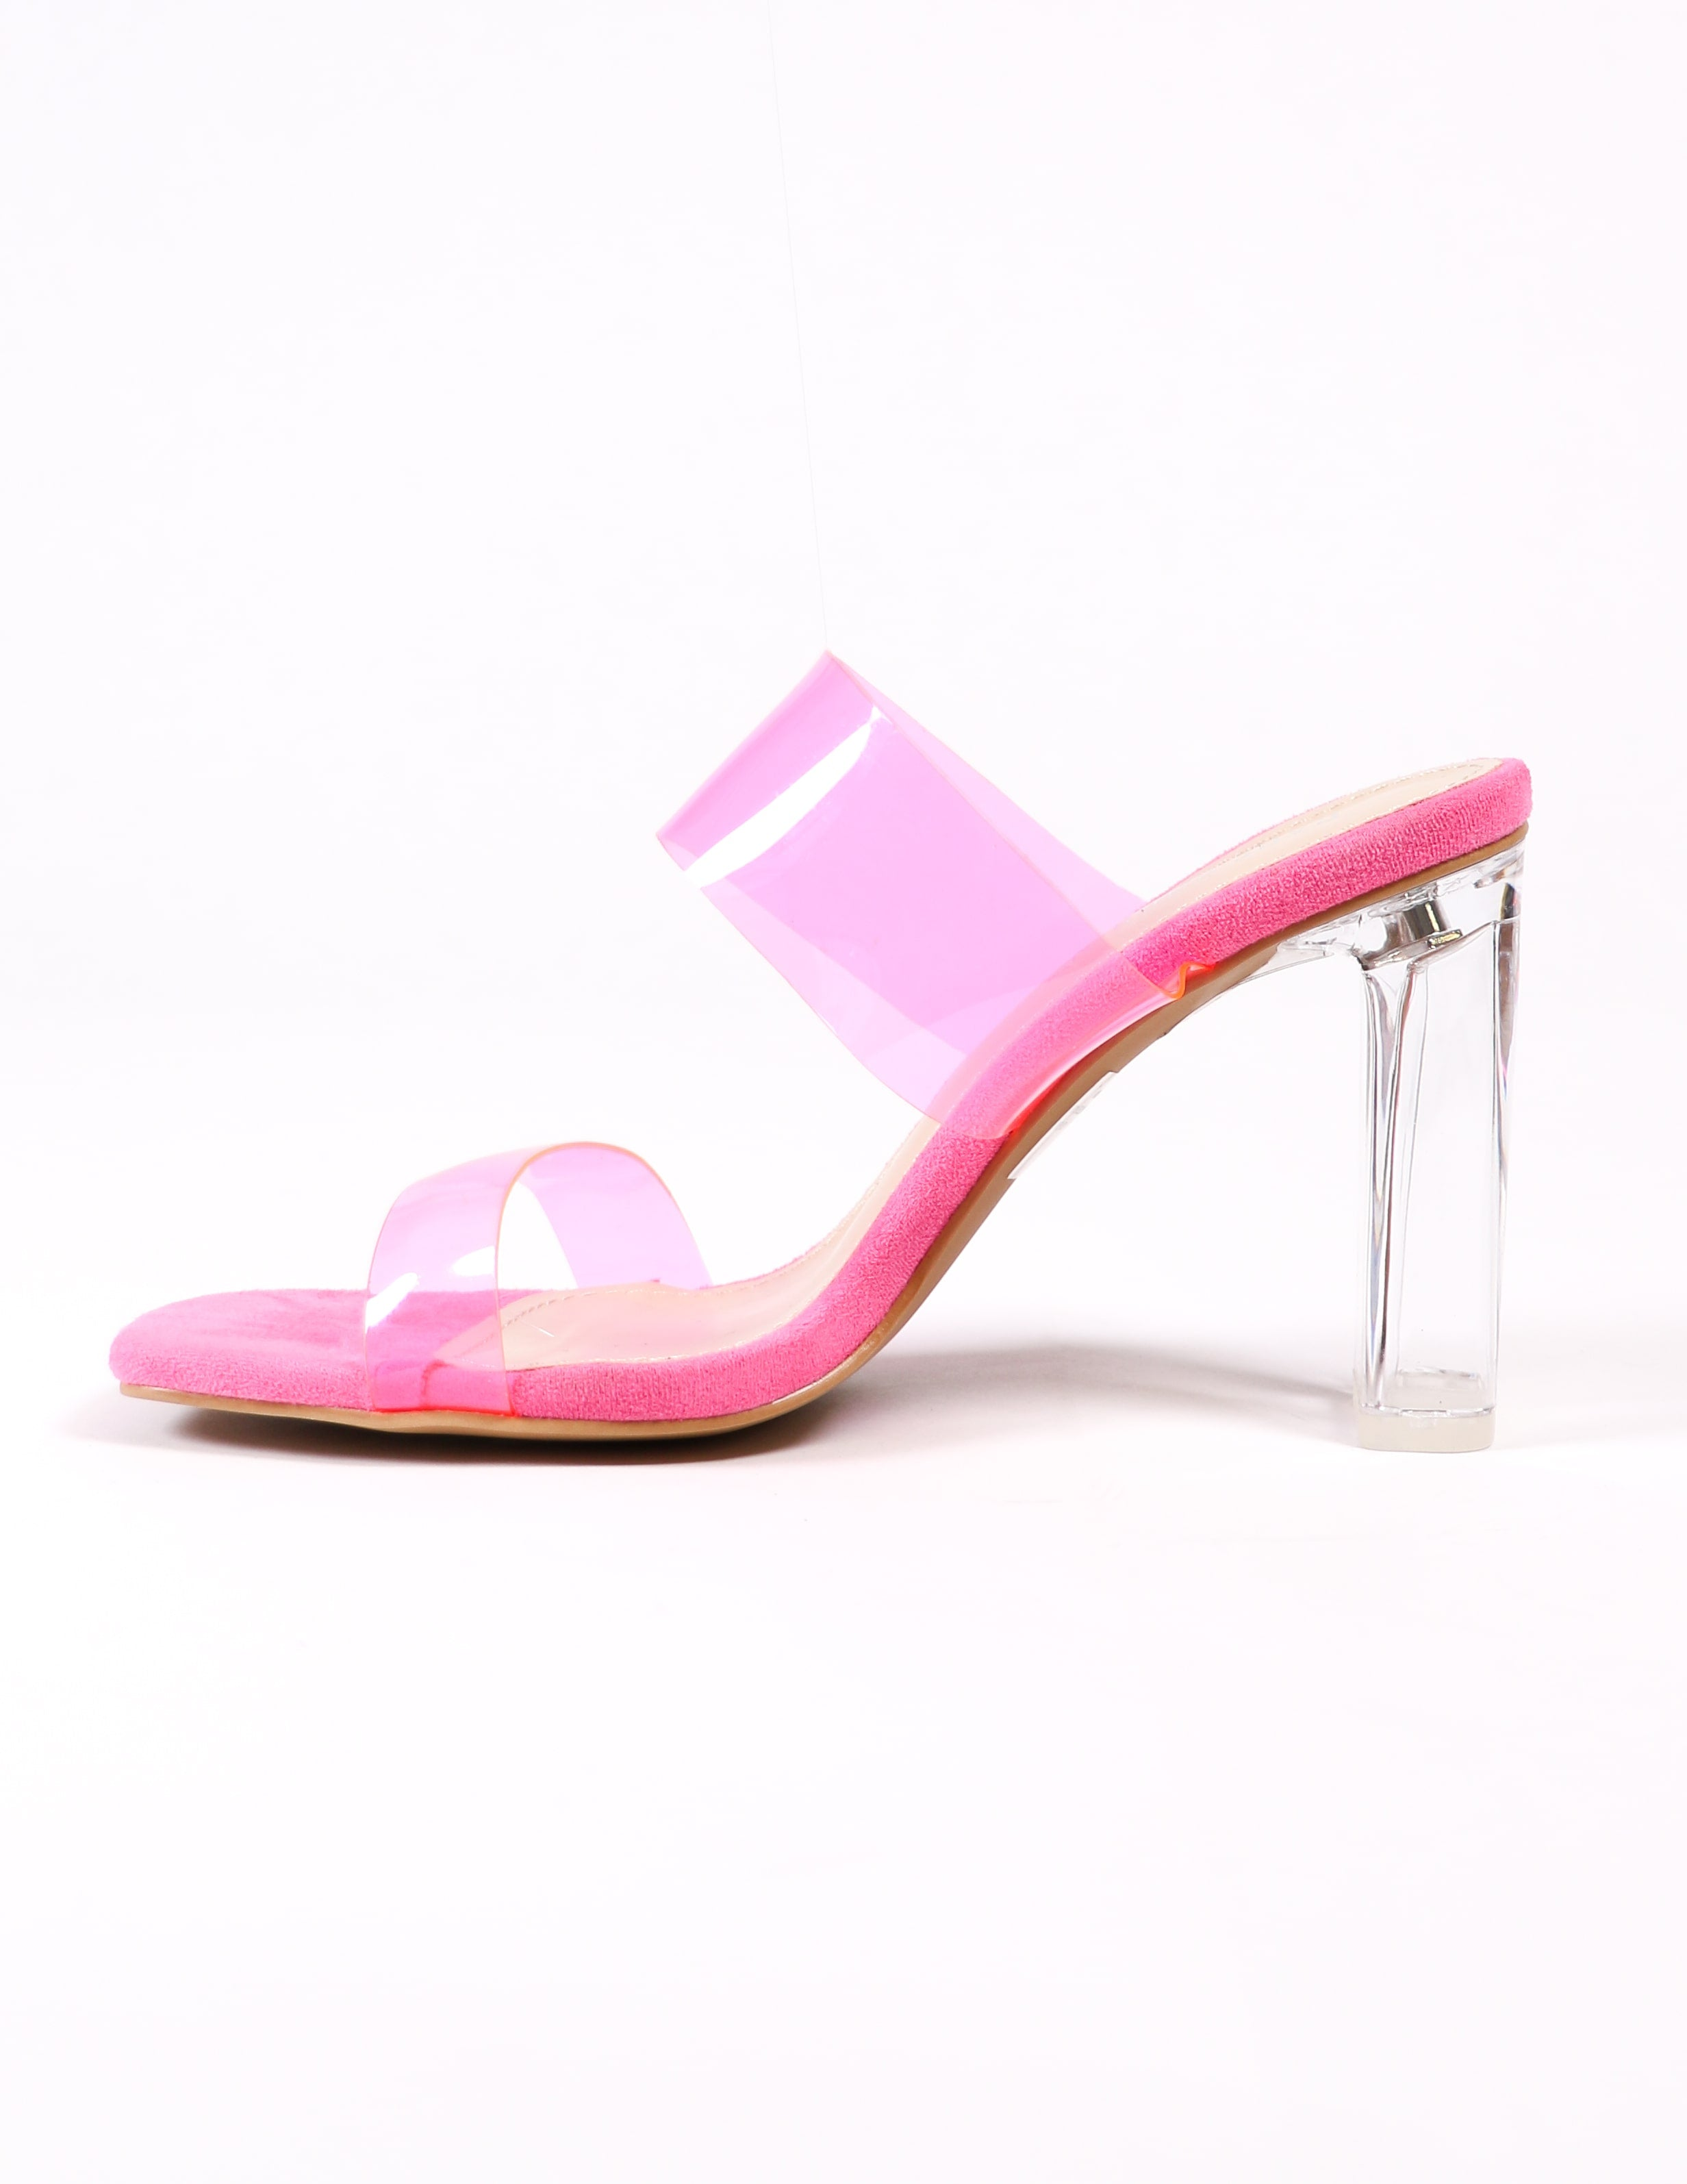 pink strappy heel on white background - elle bleu shoes